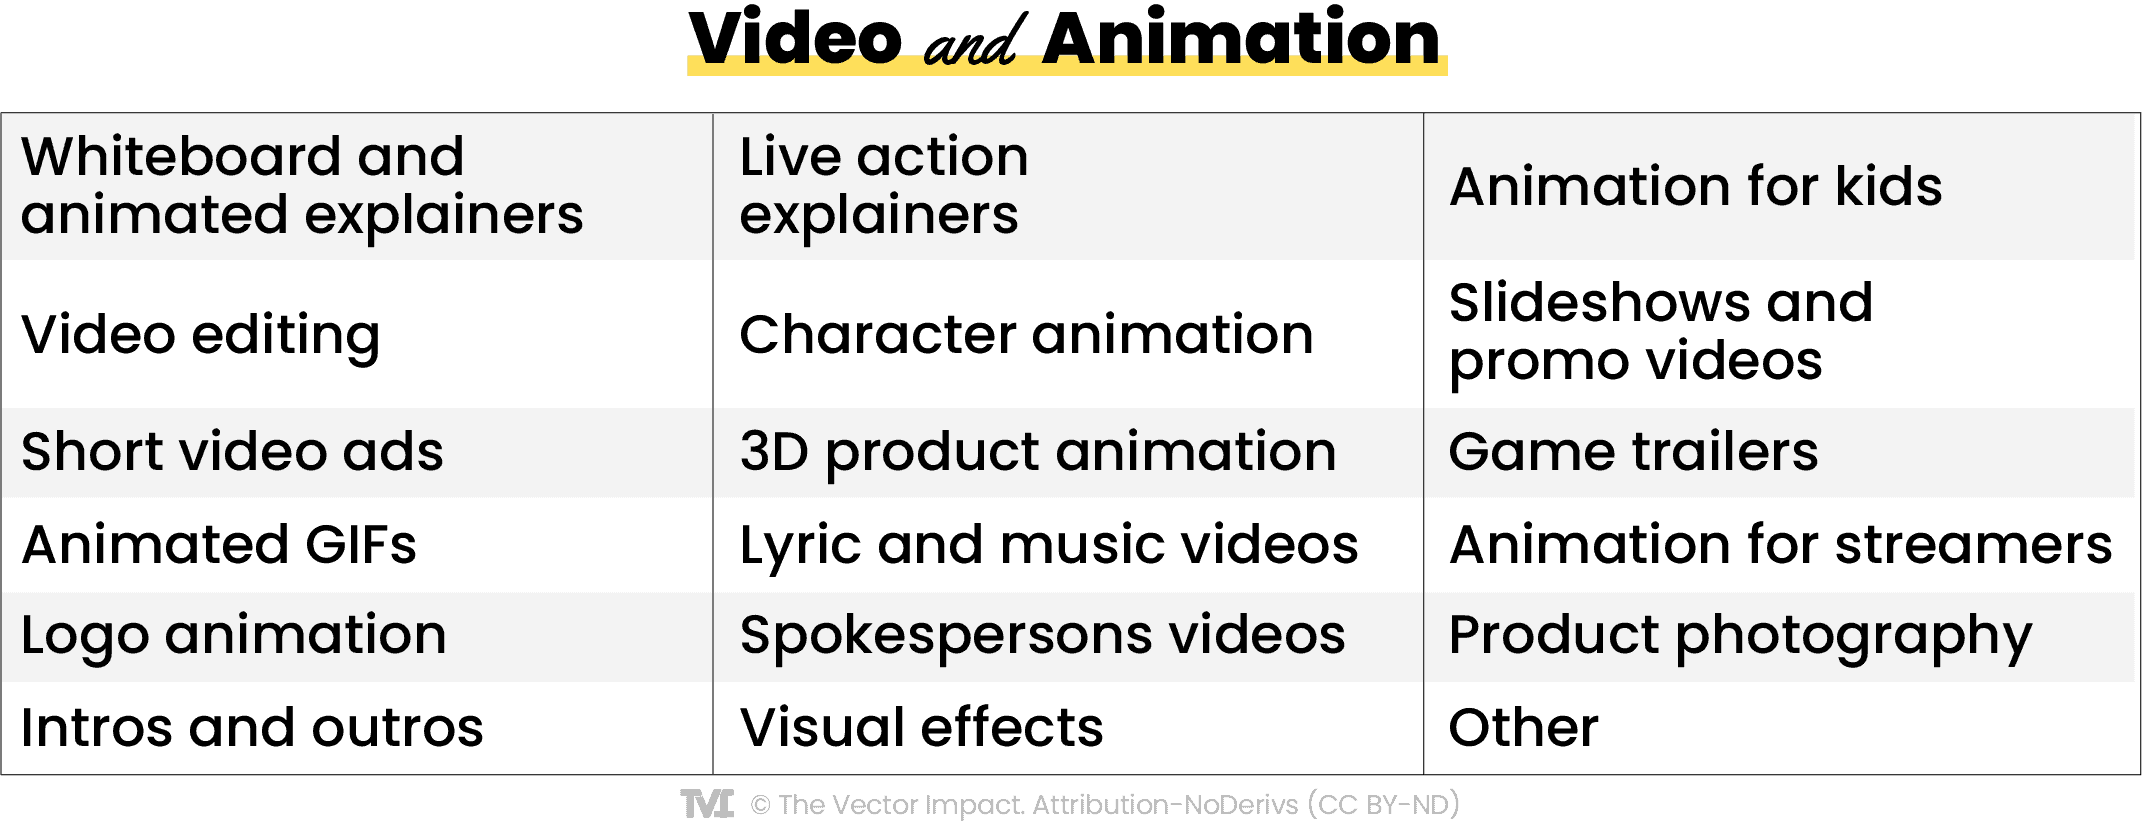 examples of video and animation jobs